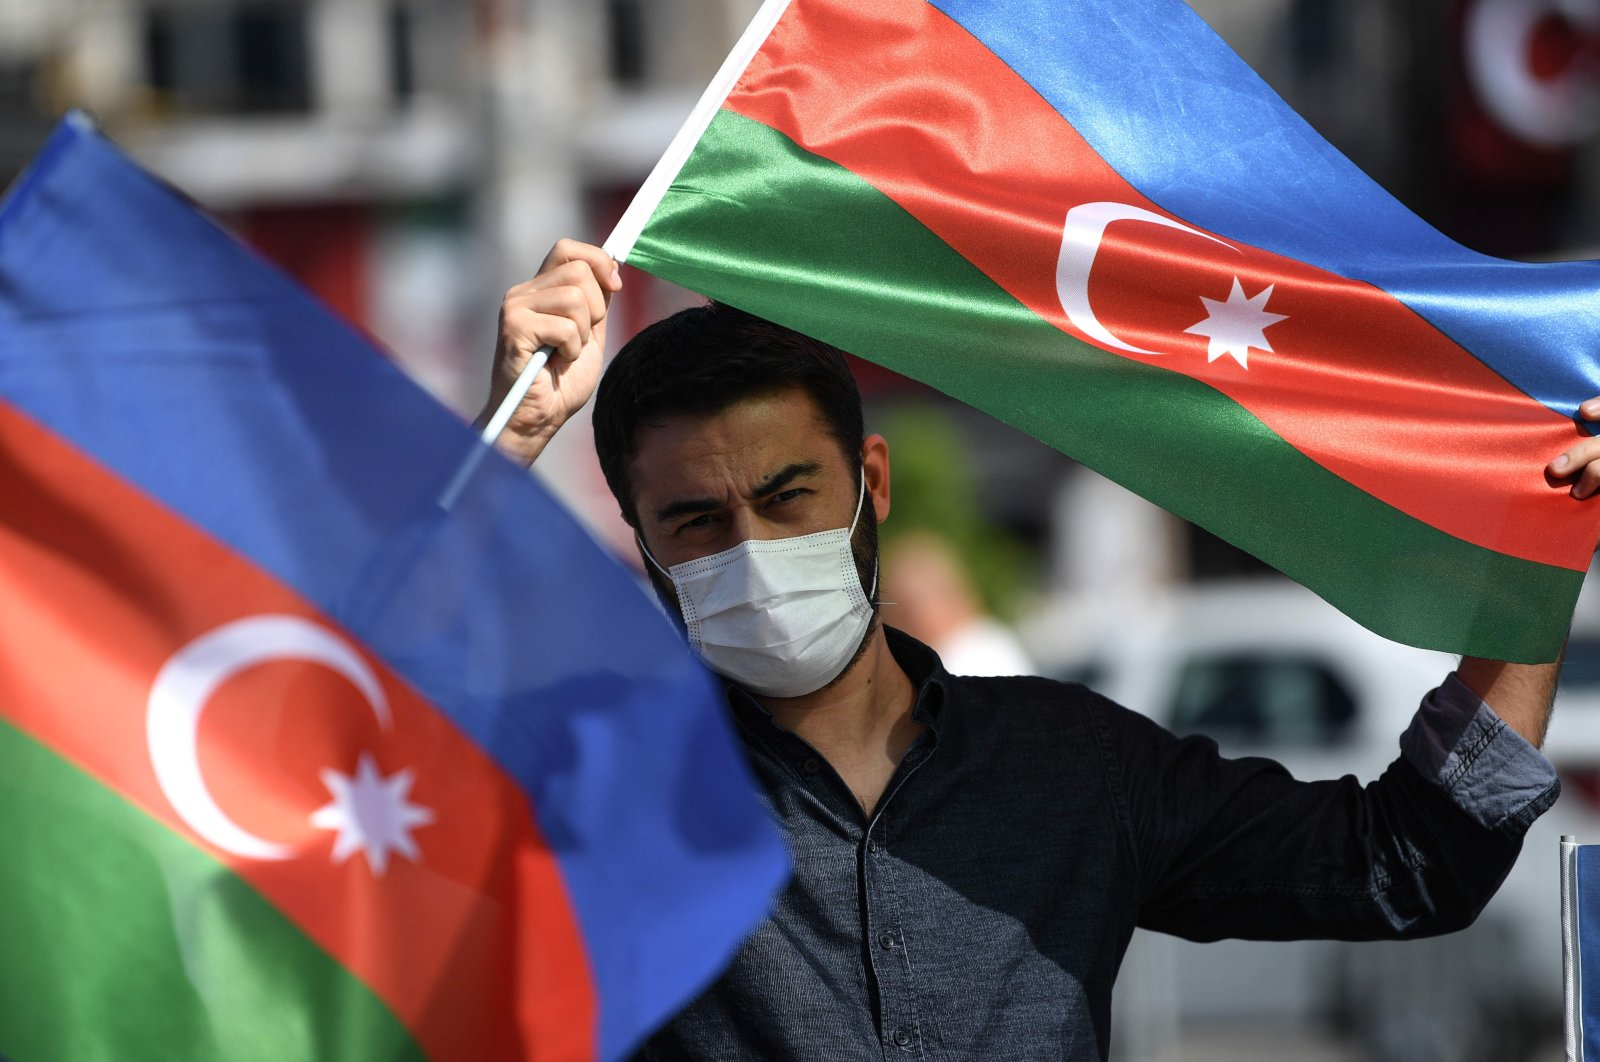 Demonstrators wave flags of Azerbaijan and Turkey in Istanbul, Oct. 1, 2020, during a protest supporting Azerbaijan. (AFP Photo)